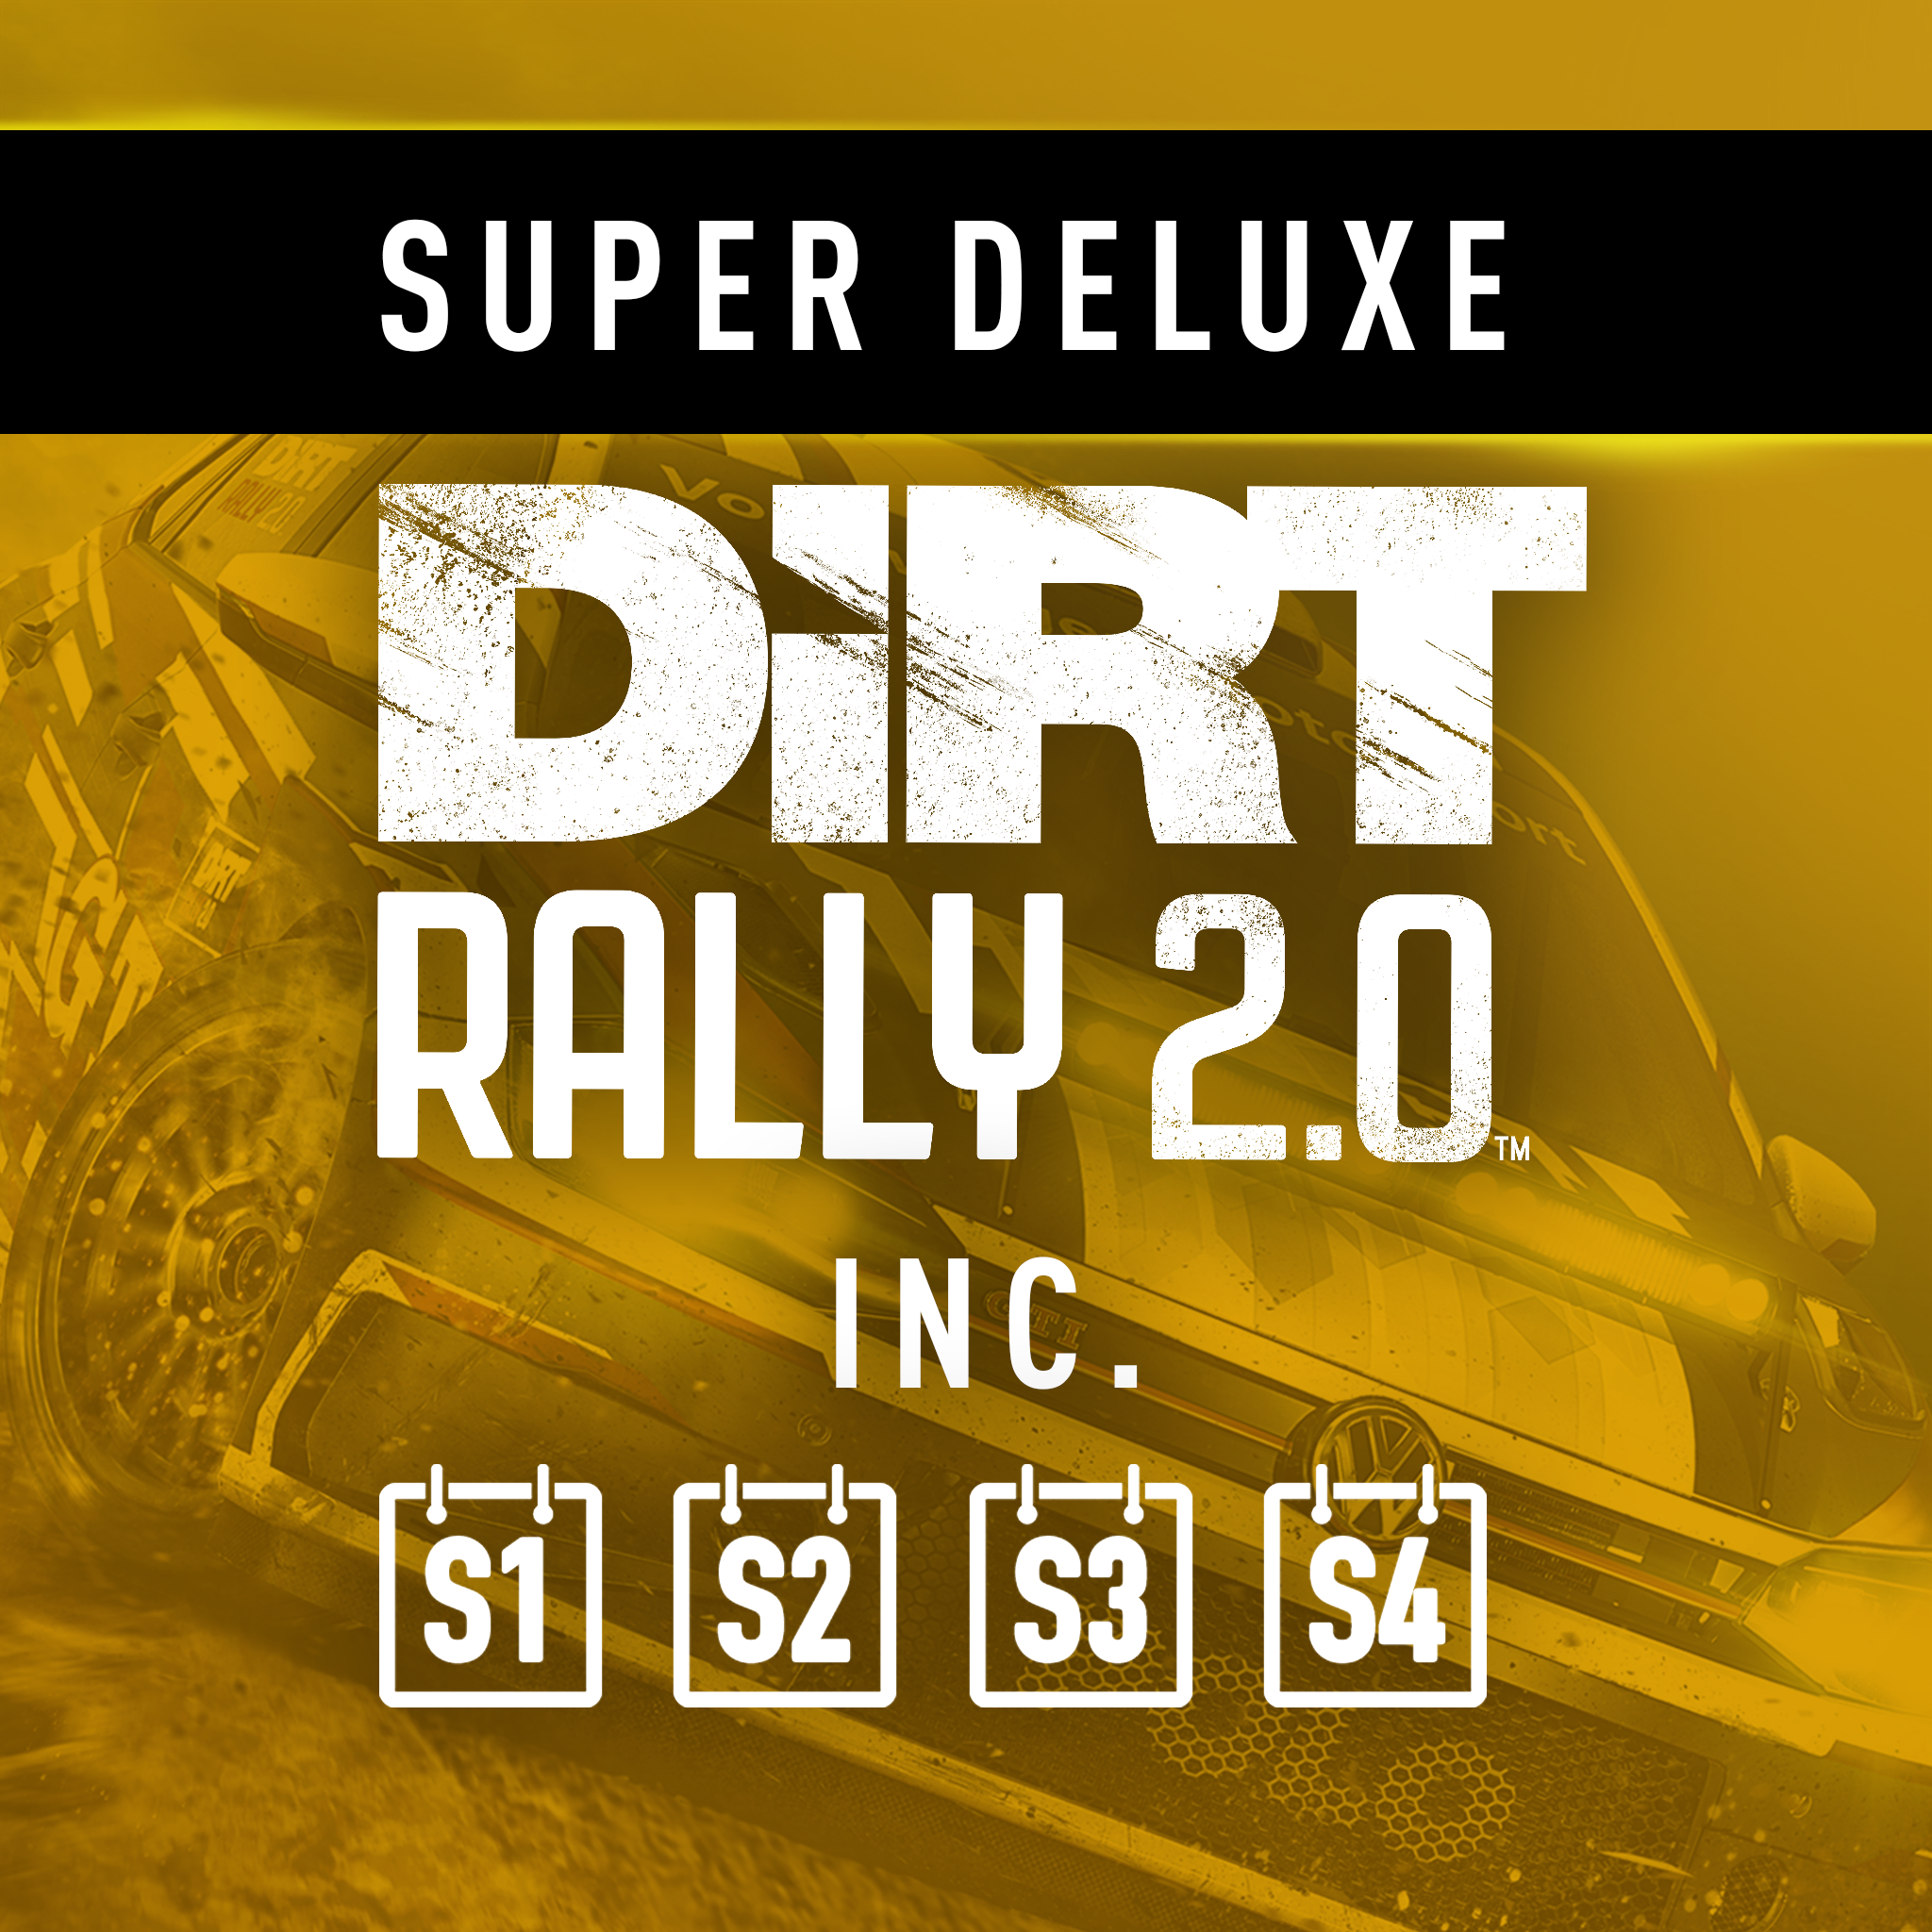 Thumbnail of DiRT Rally 2.0 - Super Deluxe Edition on PS4